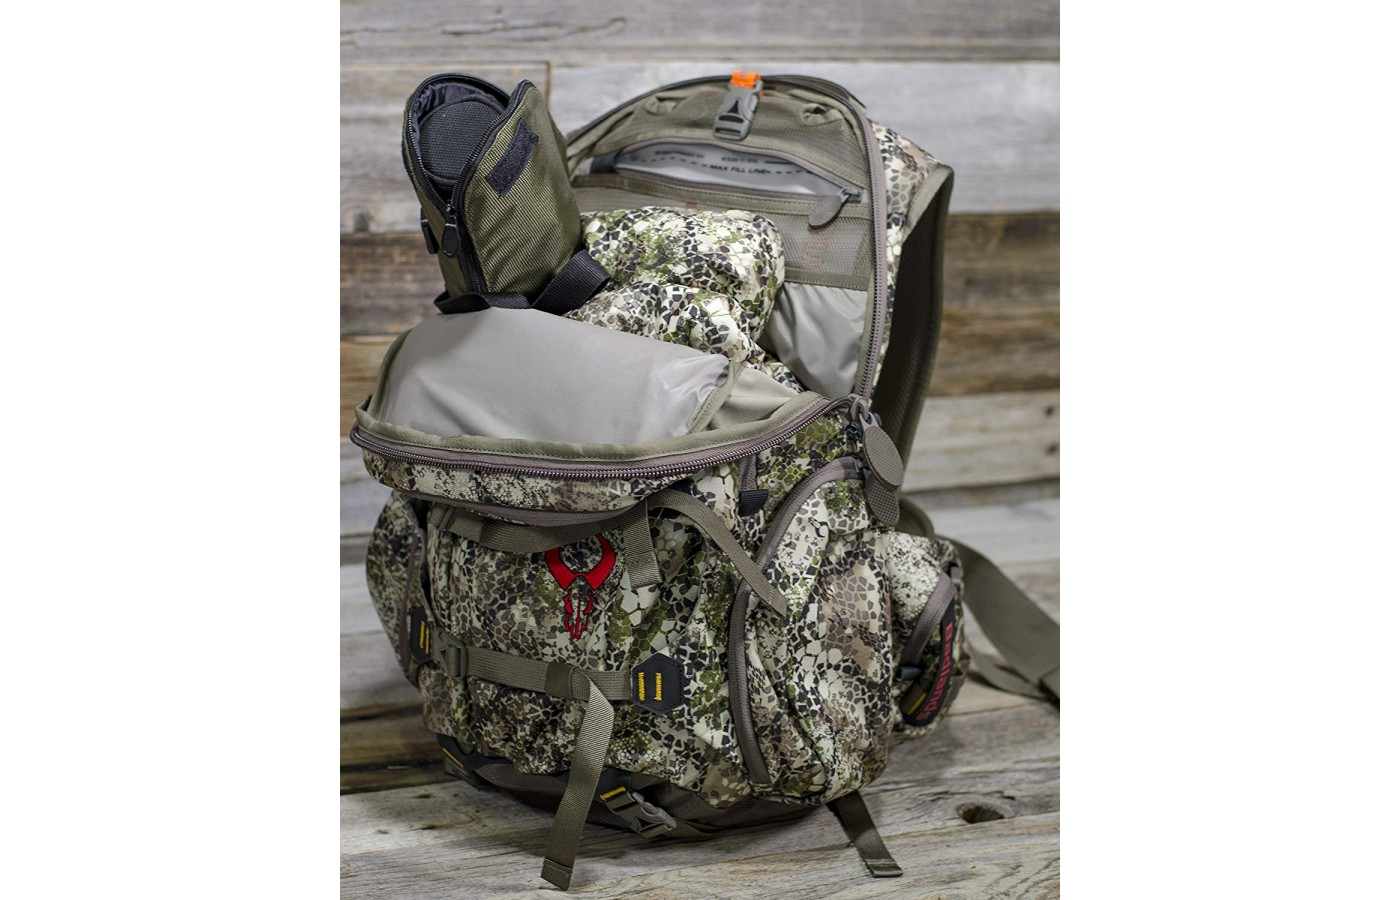 The Badlands Superday Pack is large enough to carry a substantial number of items.